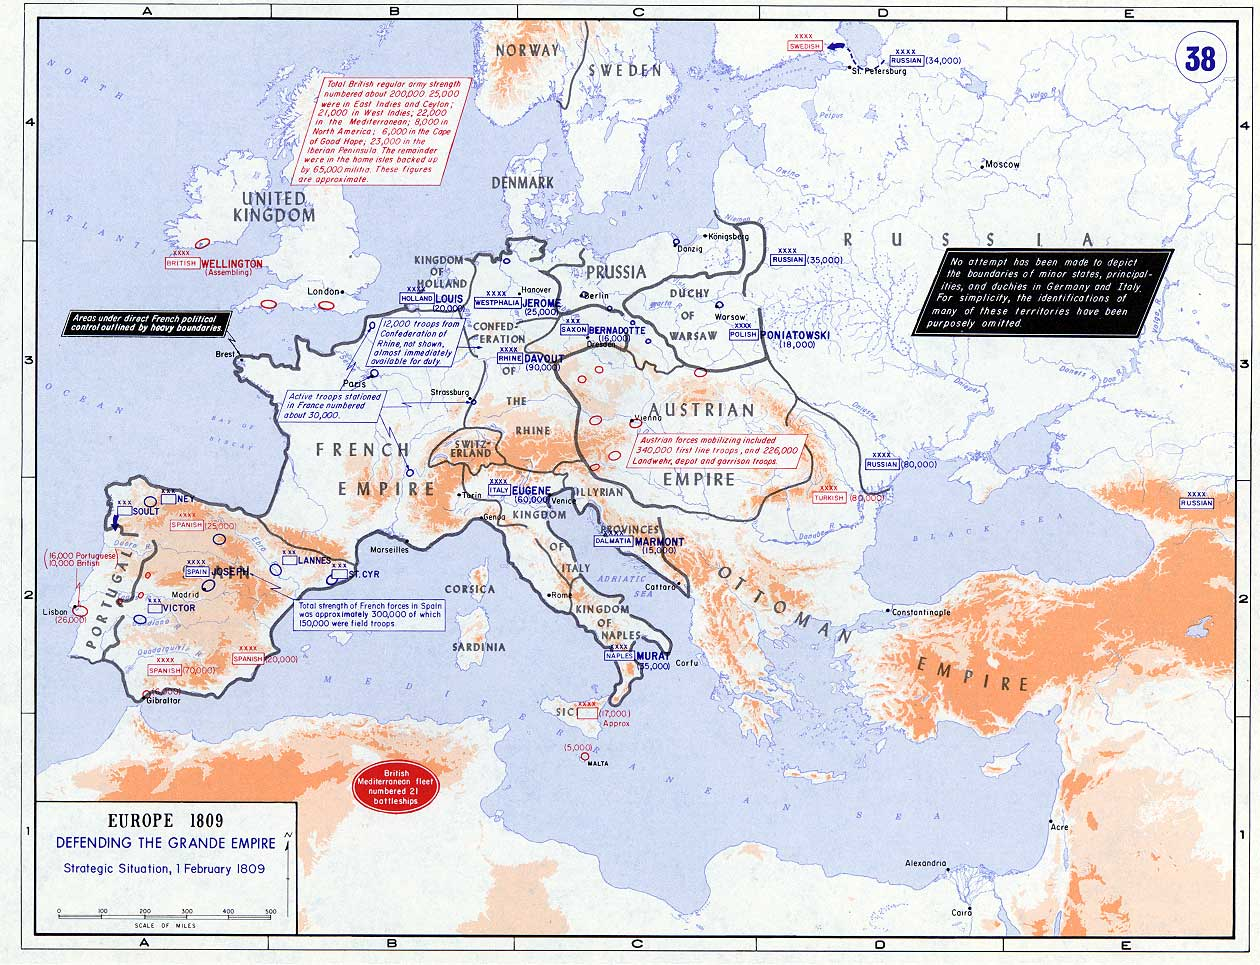 Europe strategic situation in 1809